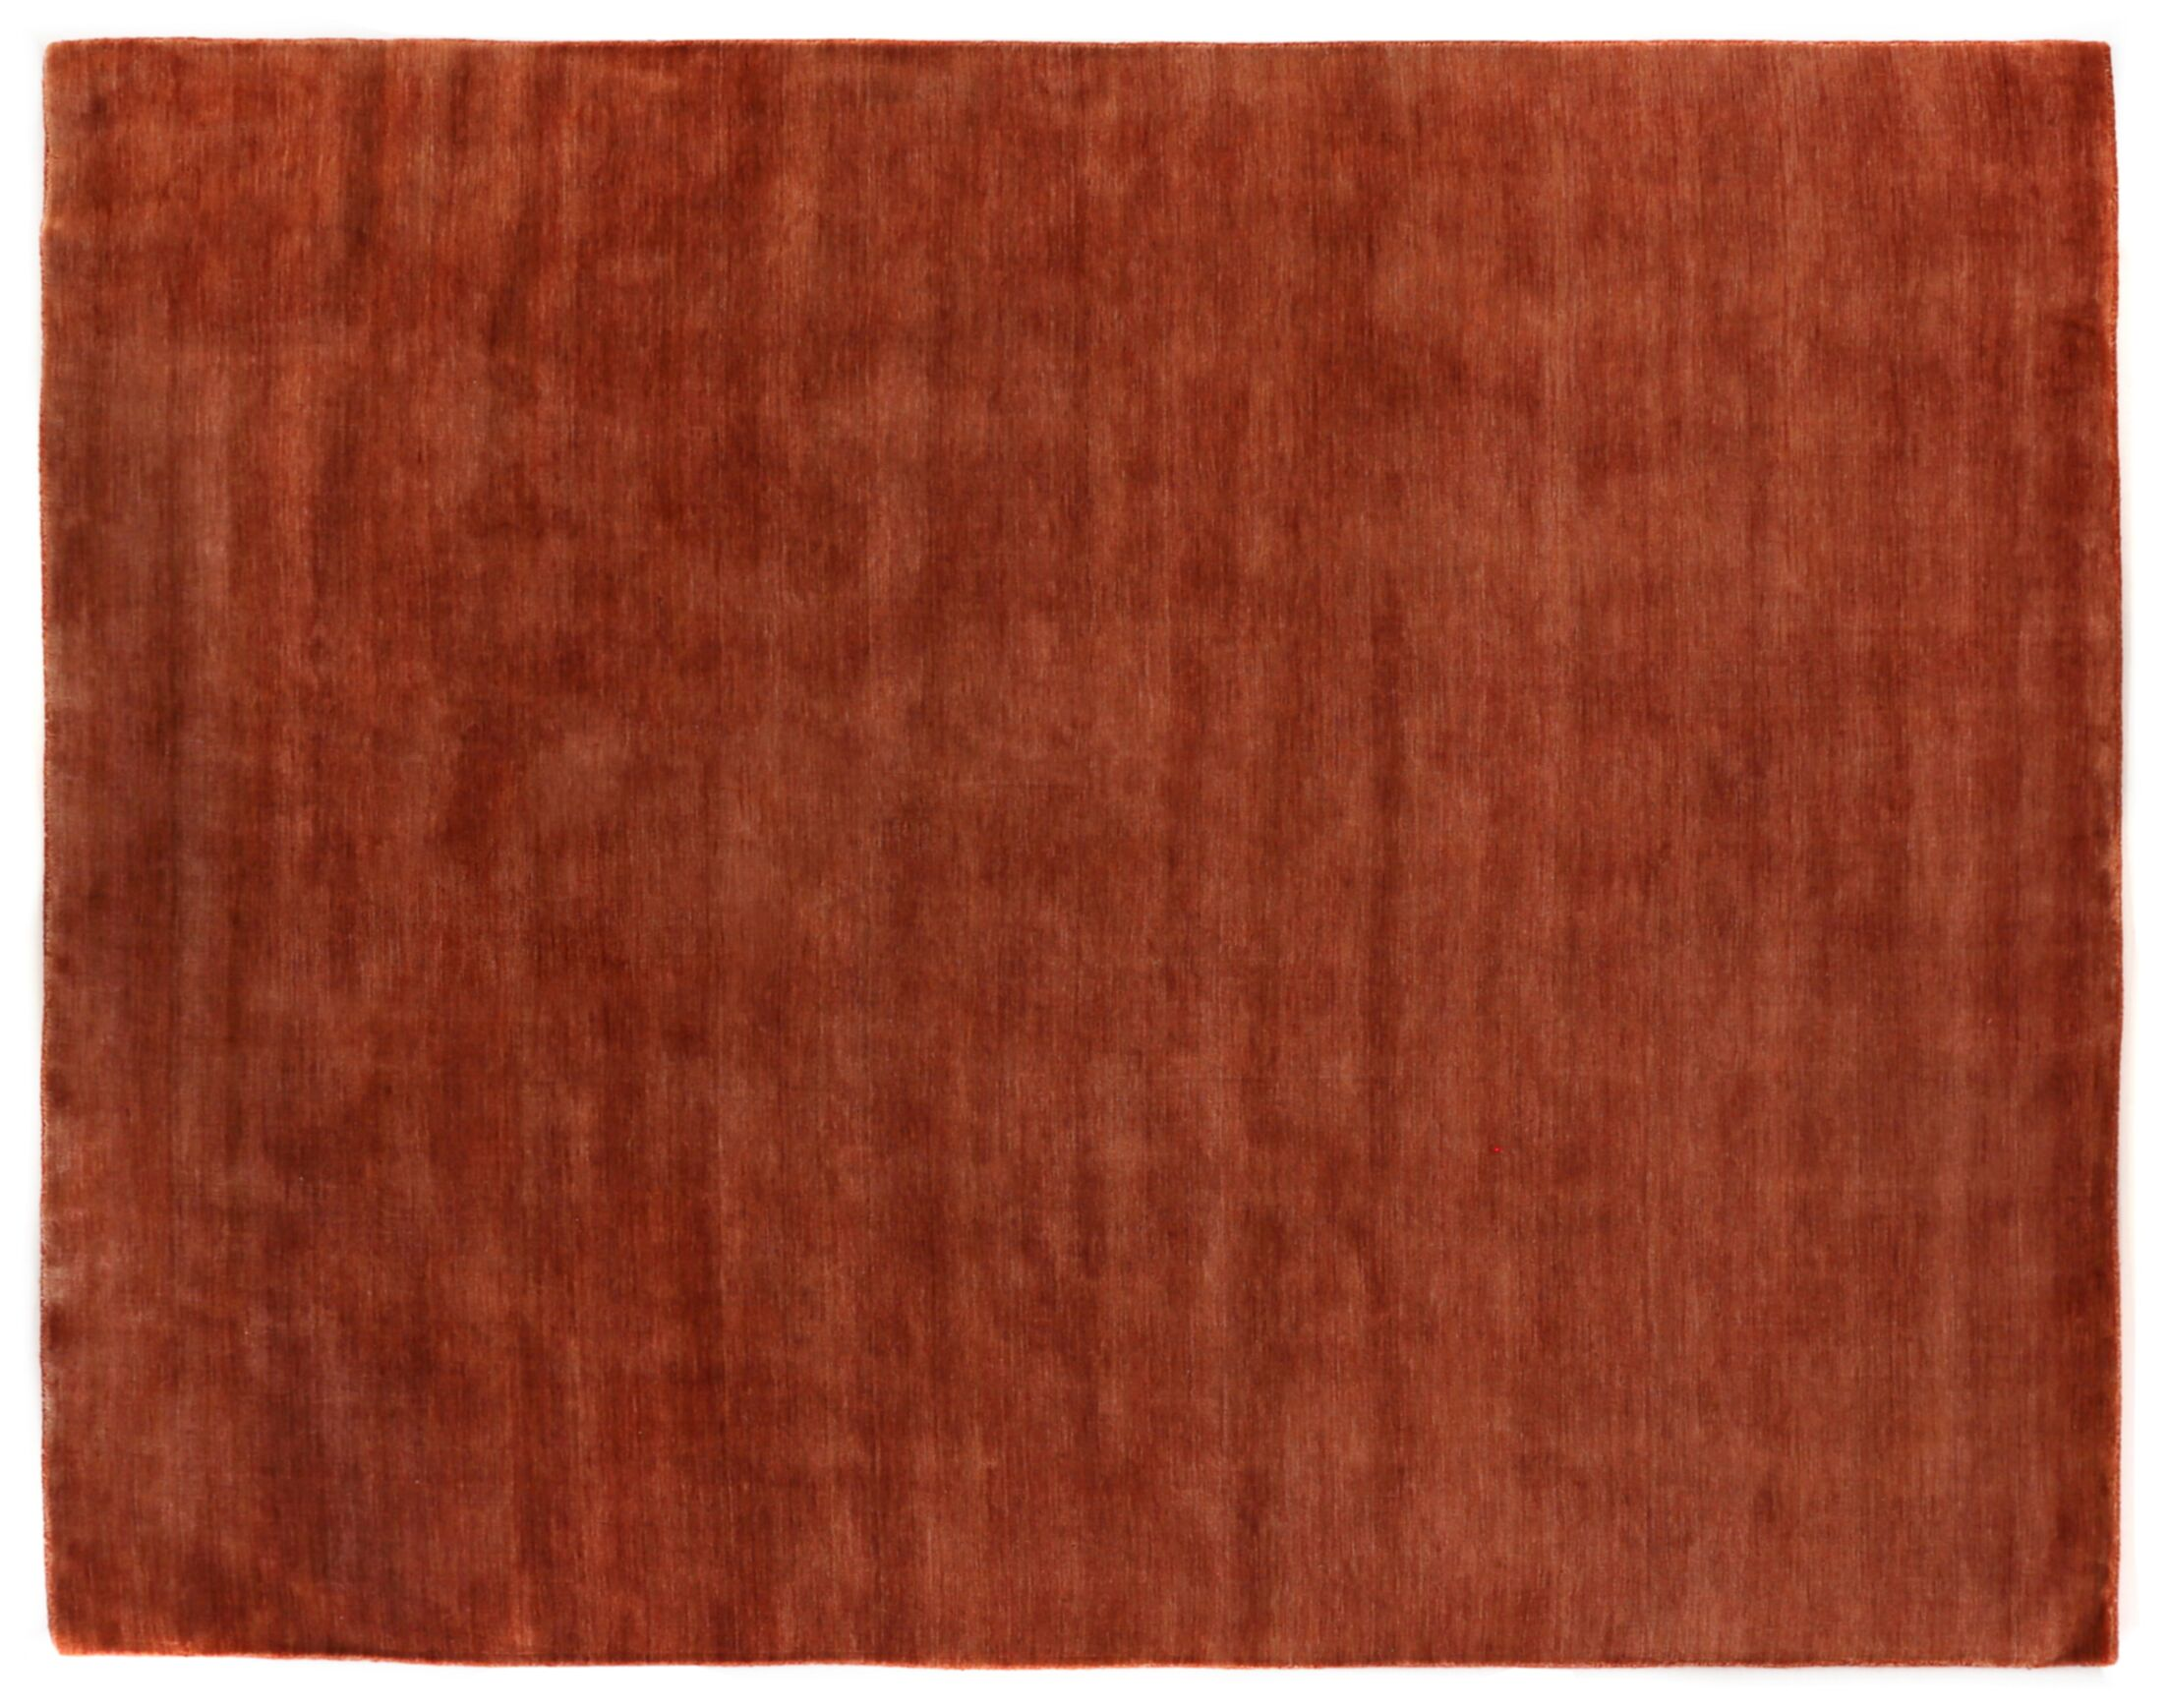 Dove Hand Woven Wool Sienna Area Rug Rug Size: Rectangle 8' x 10'